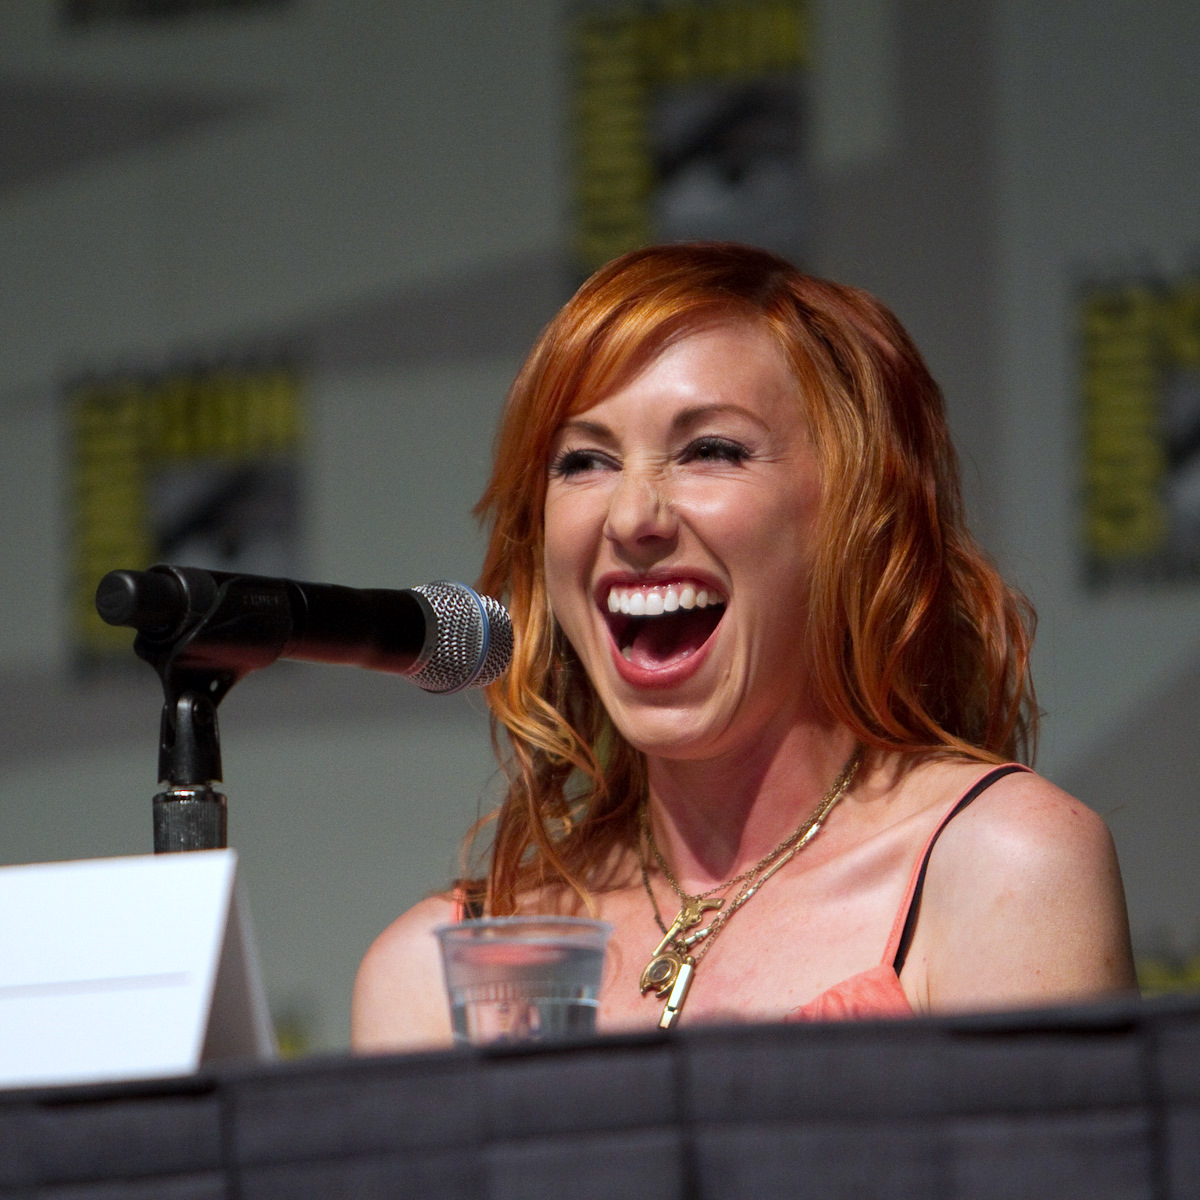 File:Kari Byron by user YGX - 03.jpg